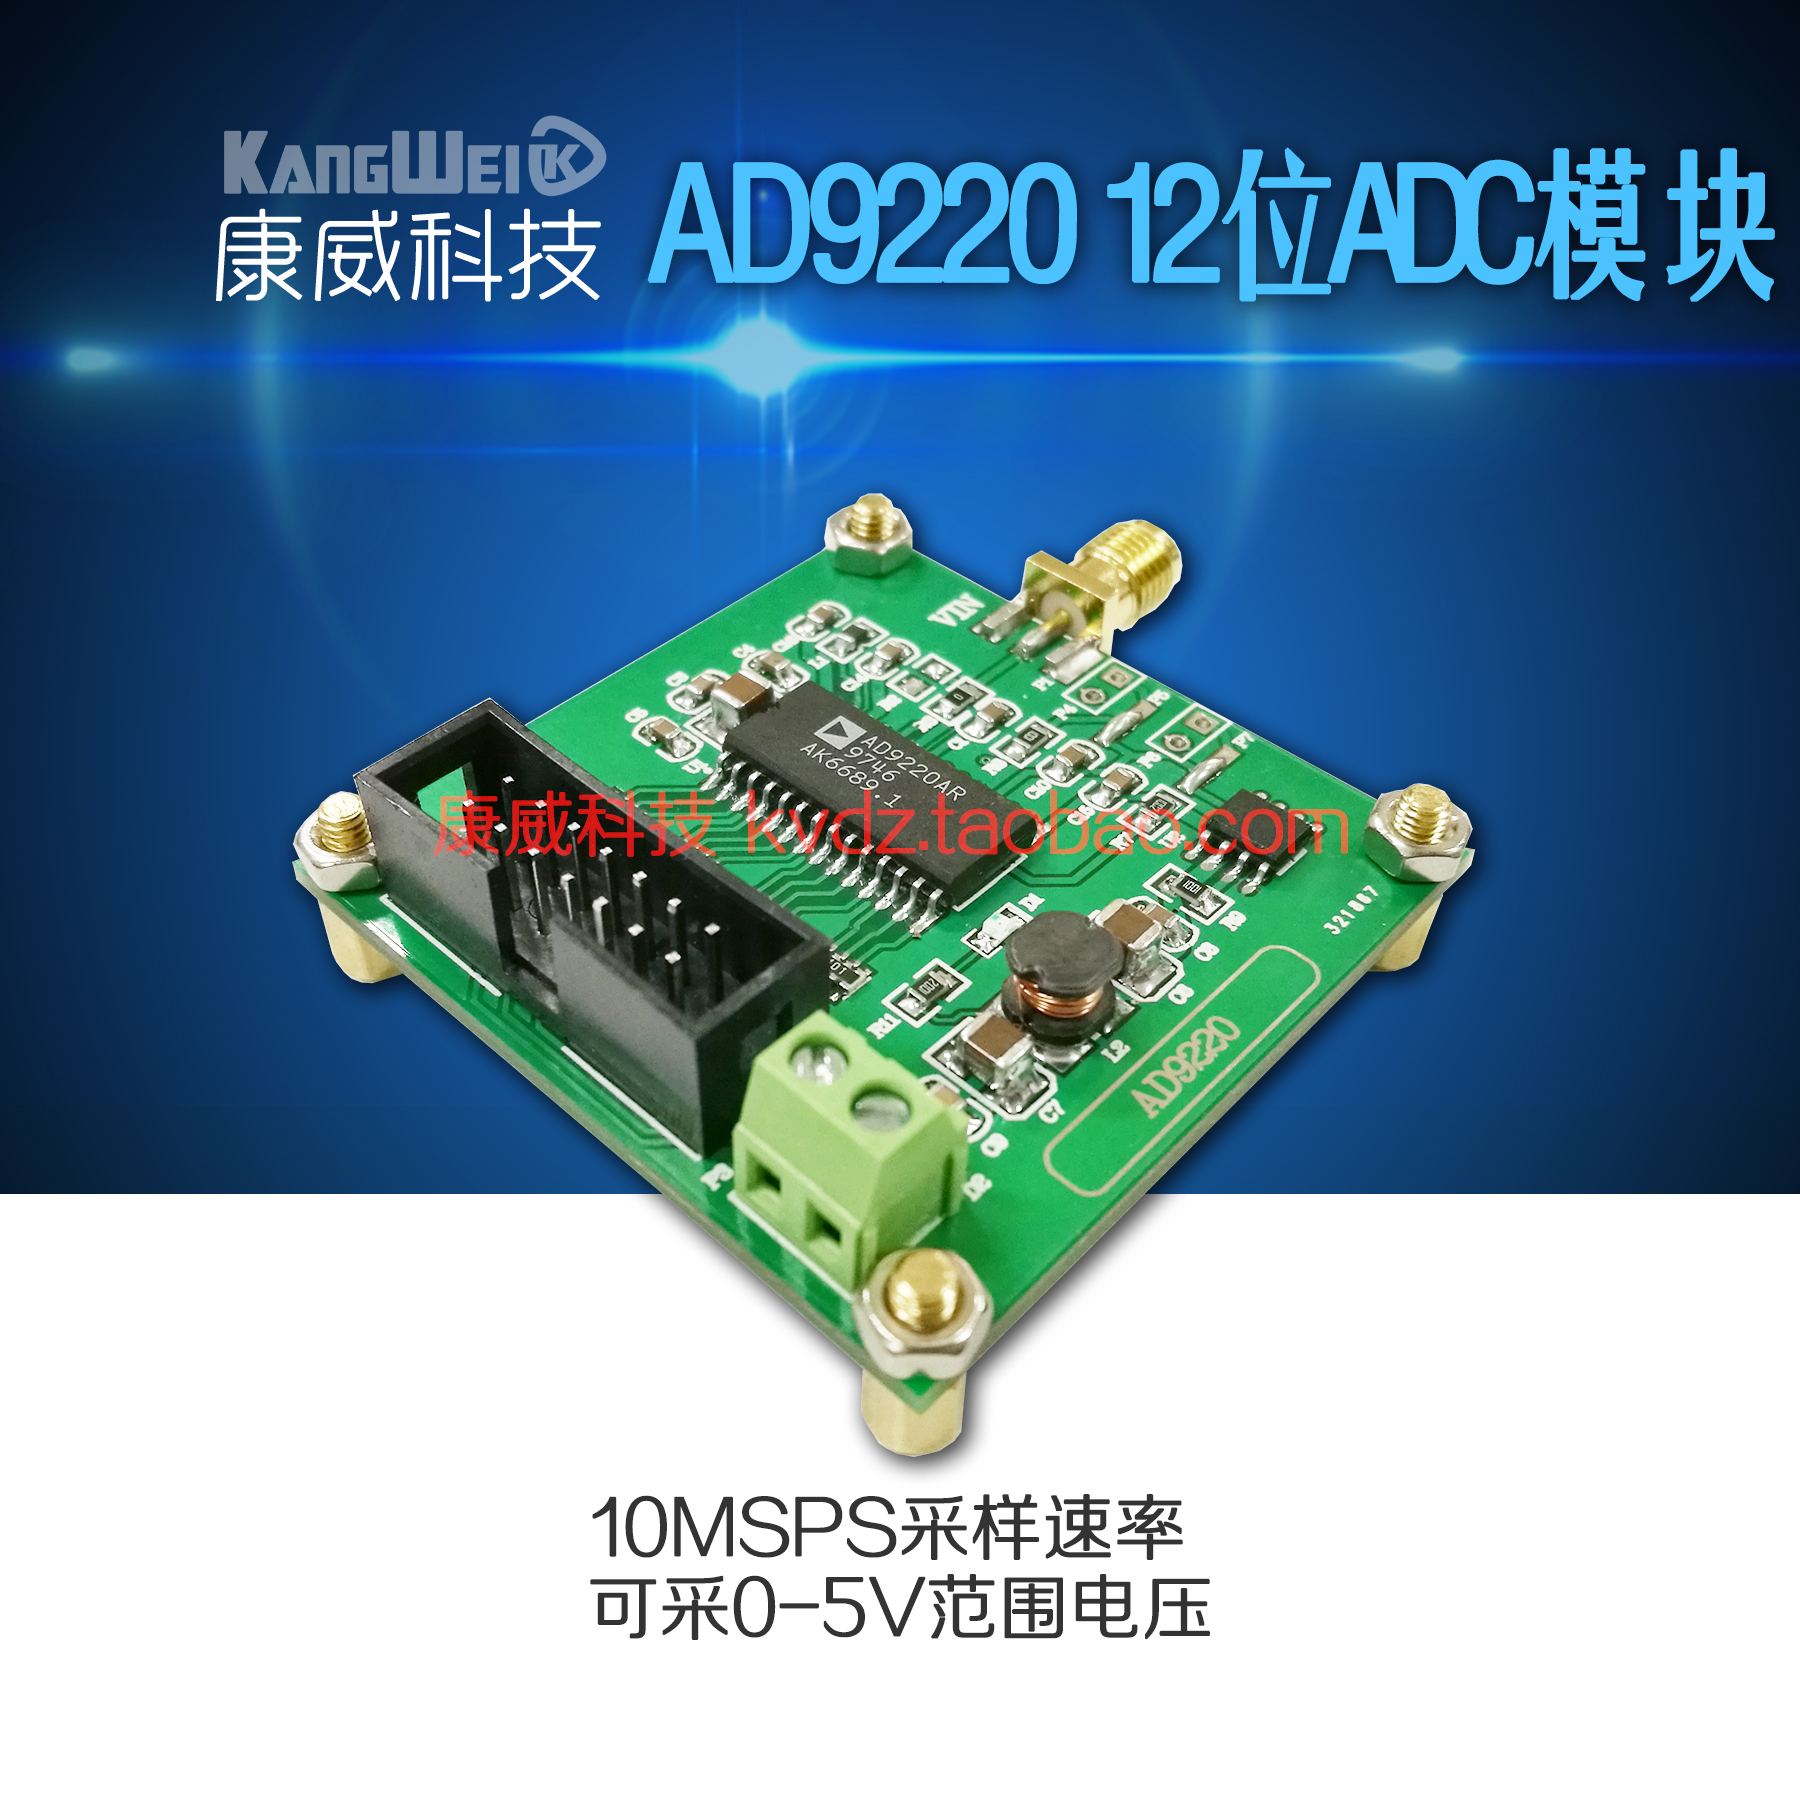 High speed AD data acquisition module AD9220 12 bit ADC module 10MSPS sampling rate free shipping 1pcs iso ad 02a u8 485 data acquisition 2 input channels isolated data acquisition module yf0617 relay